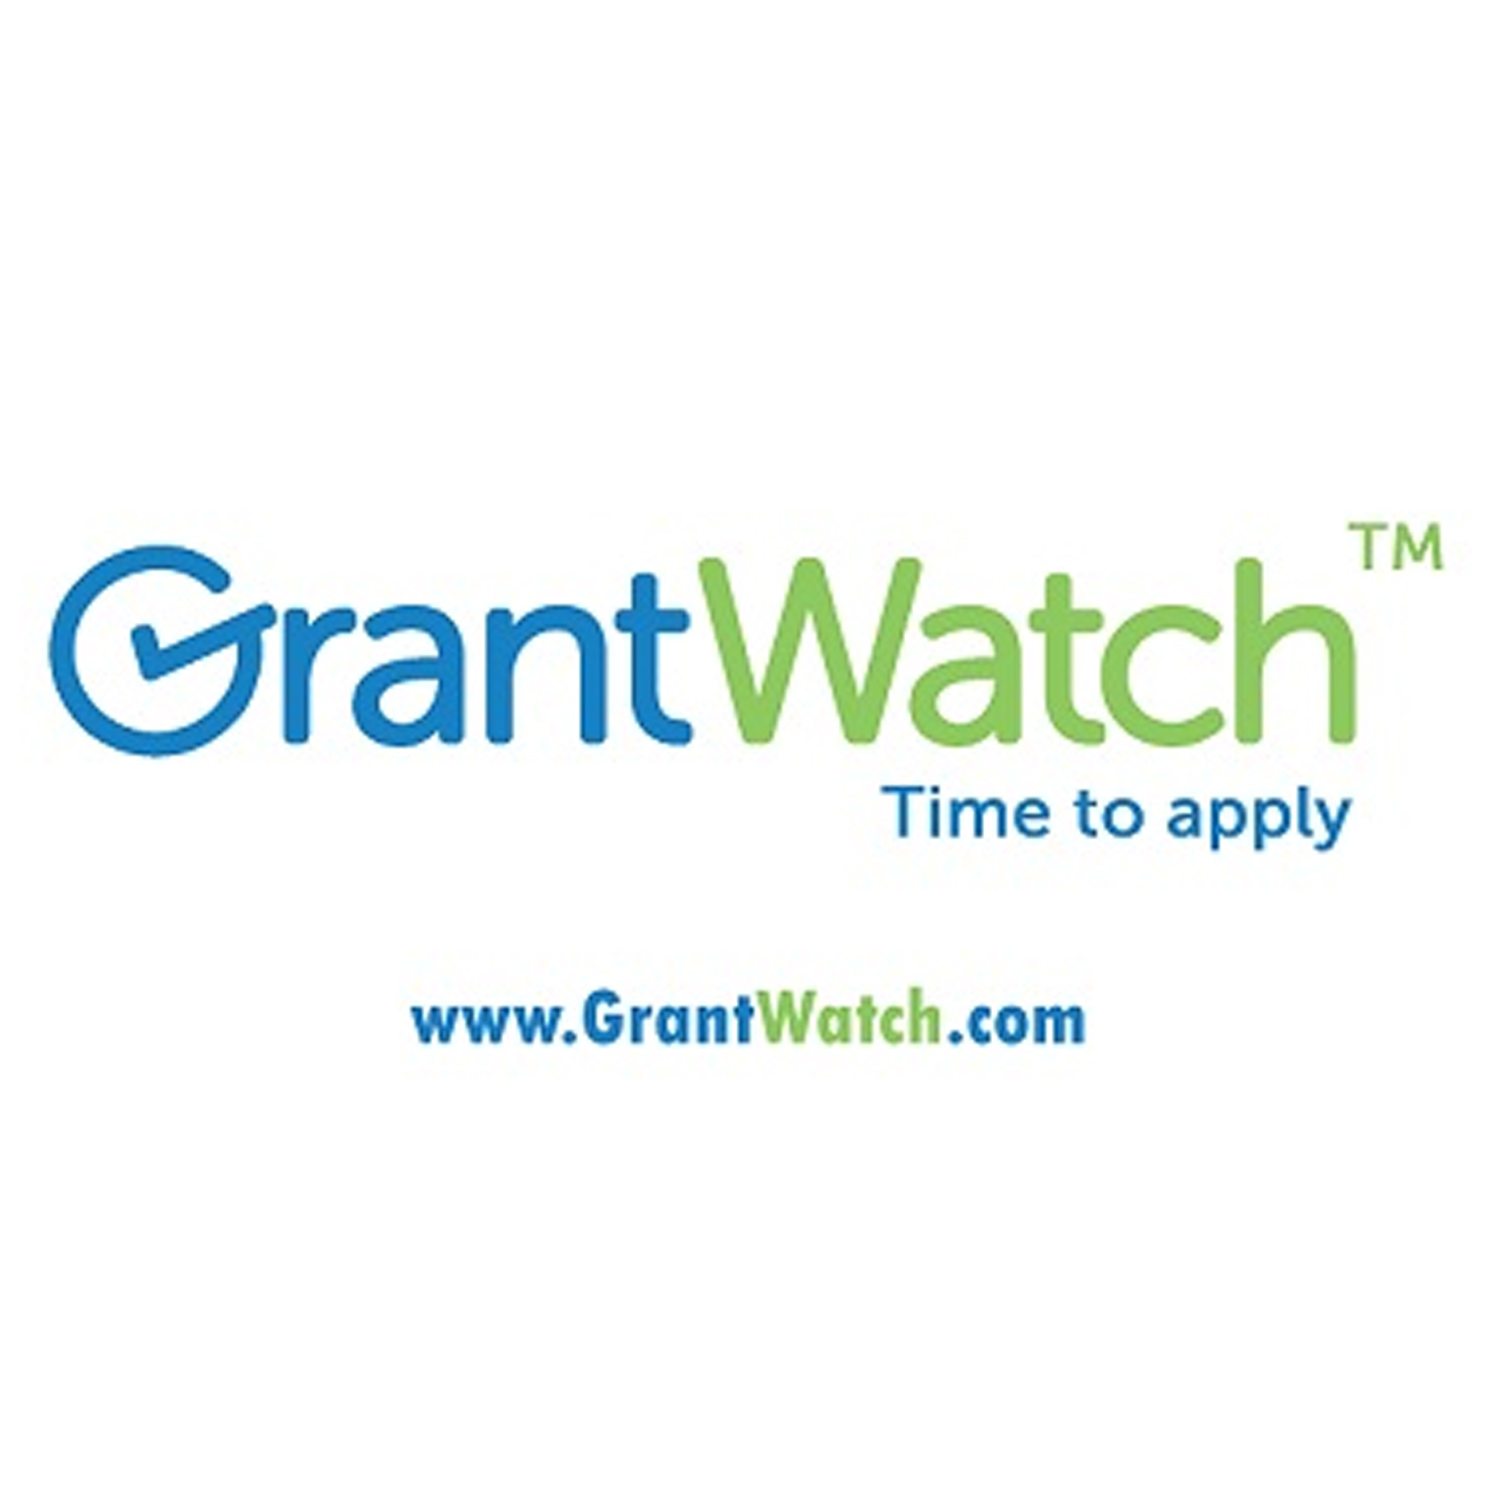 CT Grant Watch.jpg